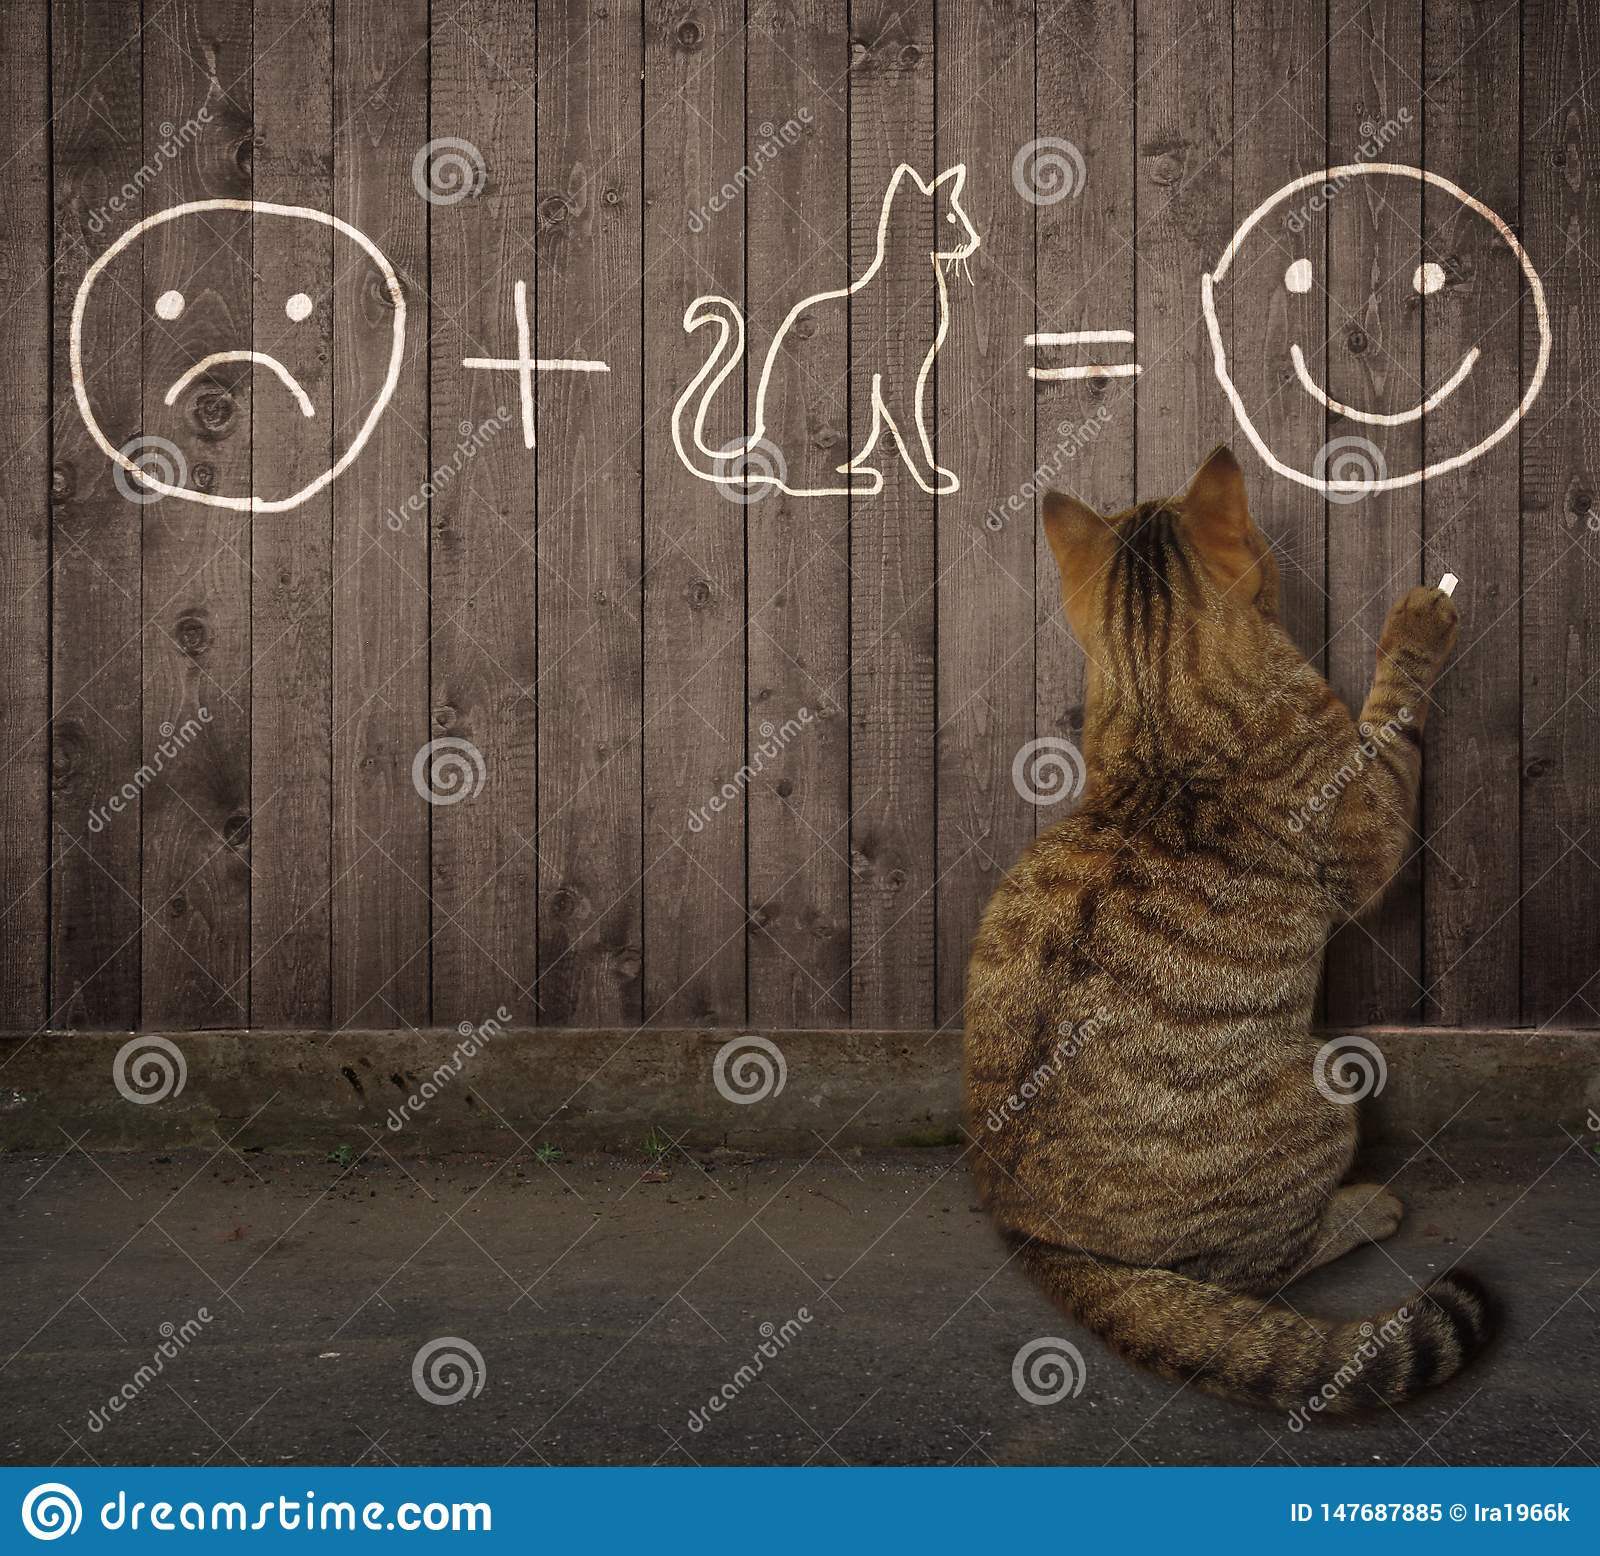 Cat writes an equation on the fence